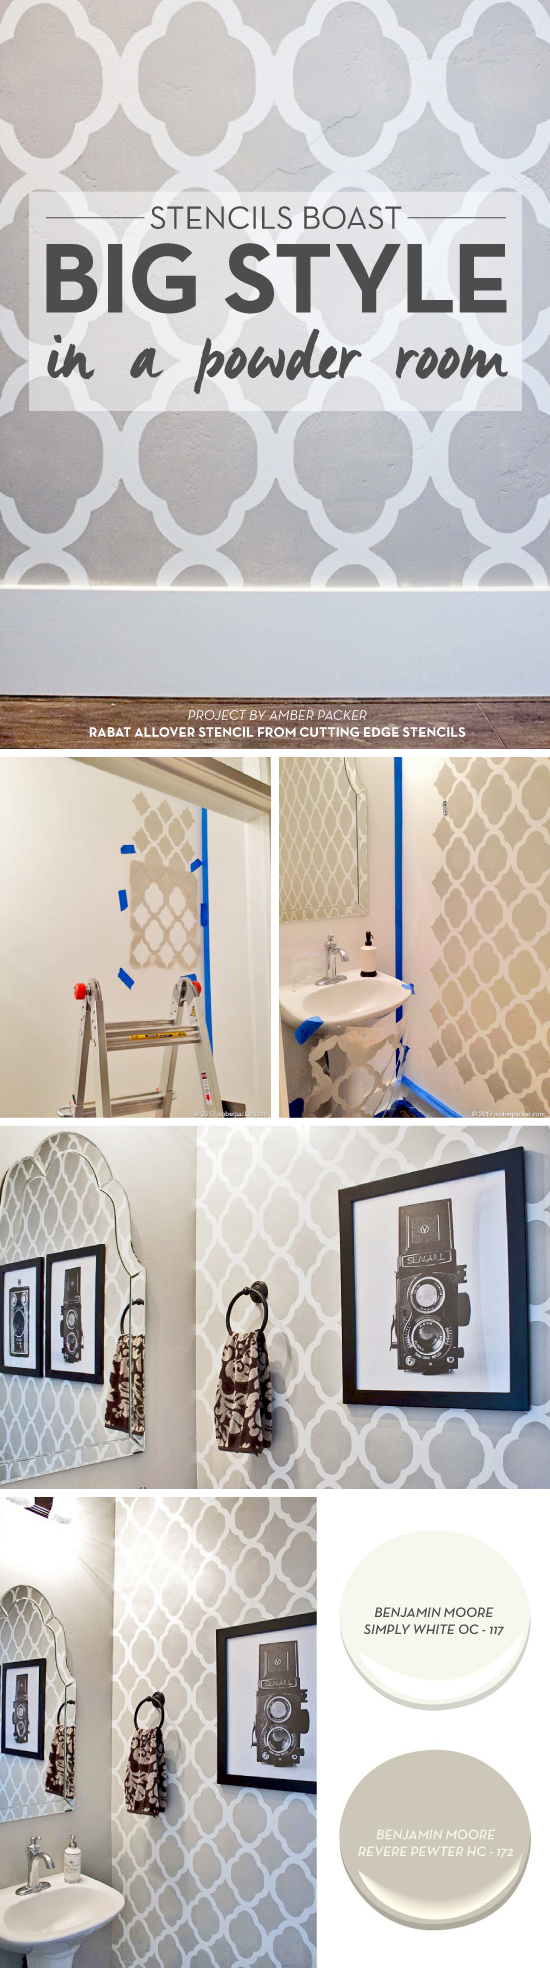 Cutting Edge Stencils shares a powder room makeover using the Rabat Allover Stencil in gray and white. http://www.cuttingedgestencils.com/moroccan-stencil-pattern-3.html